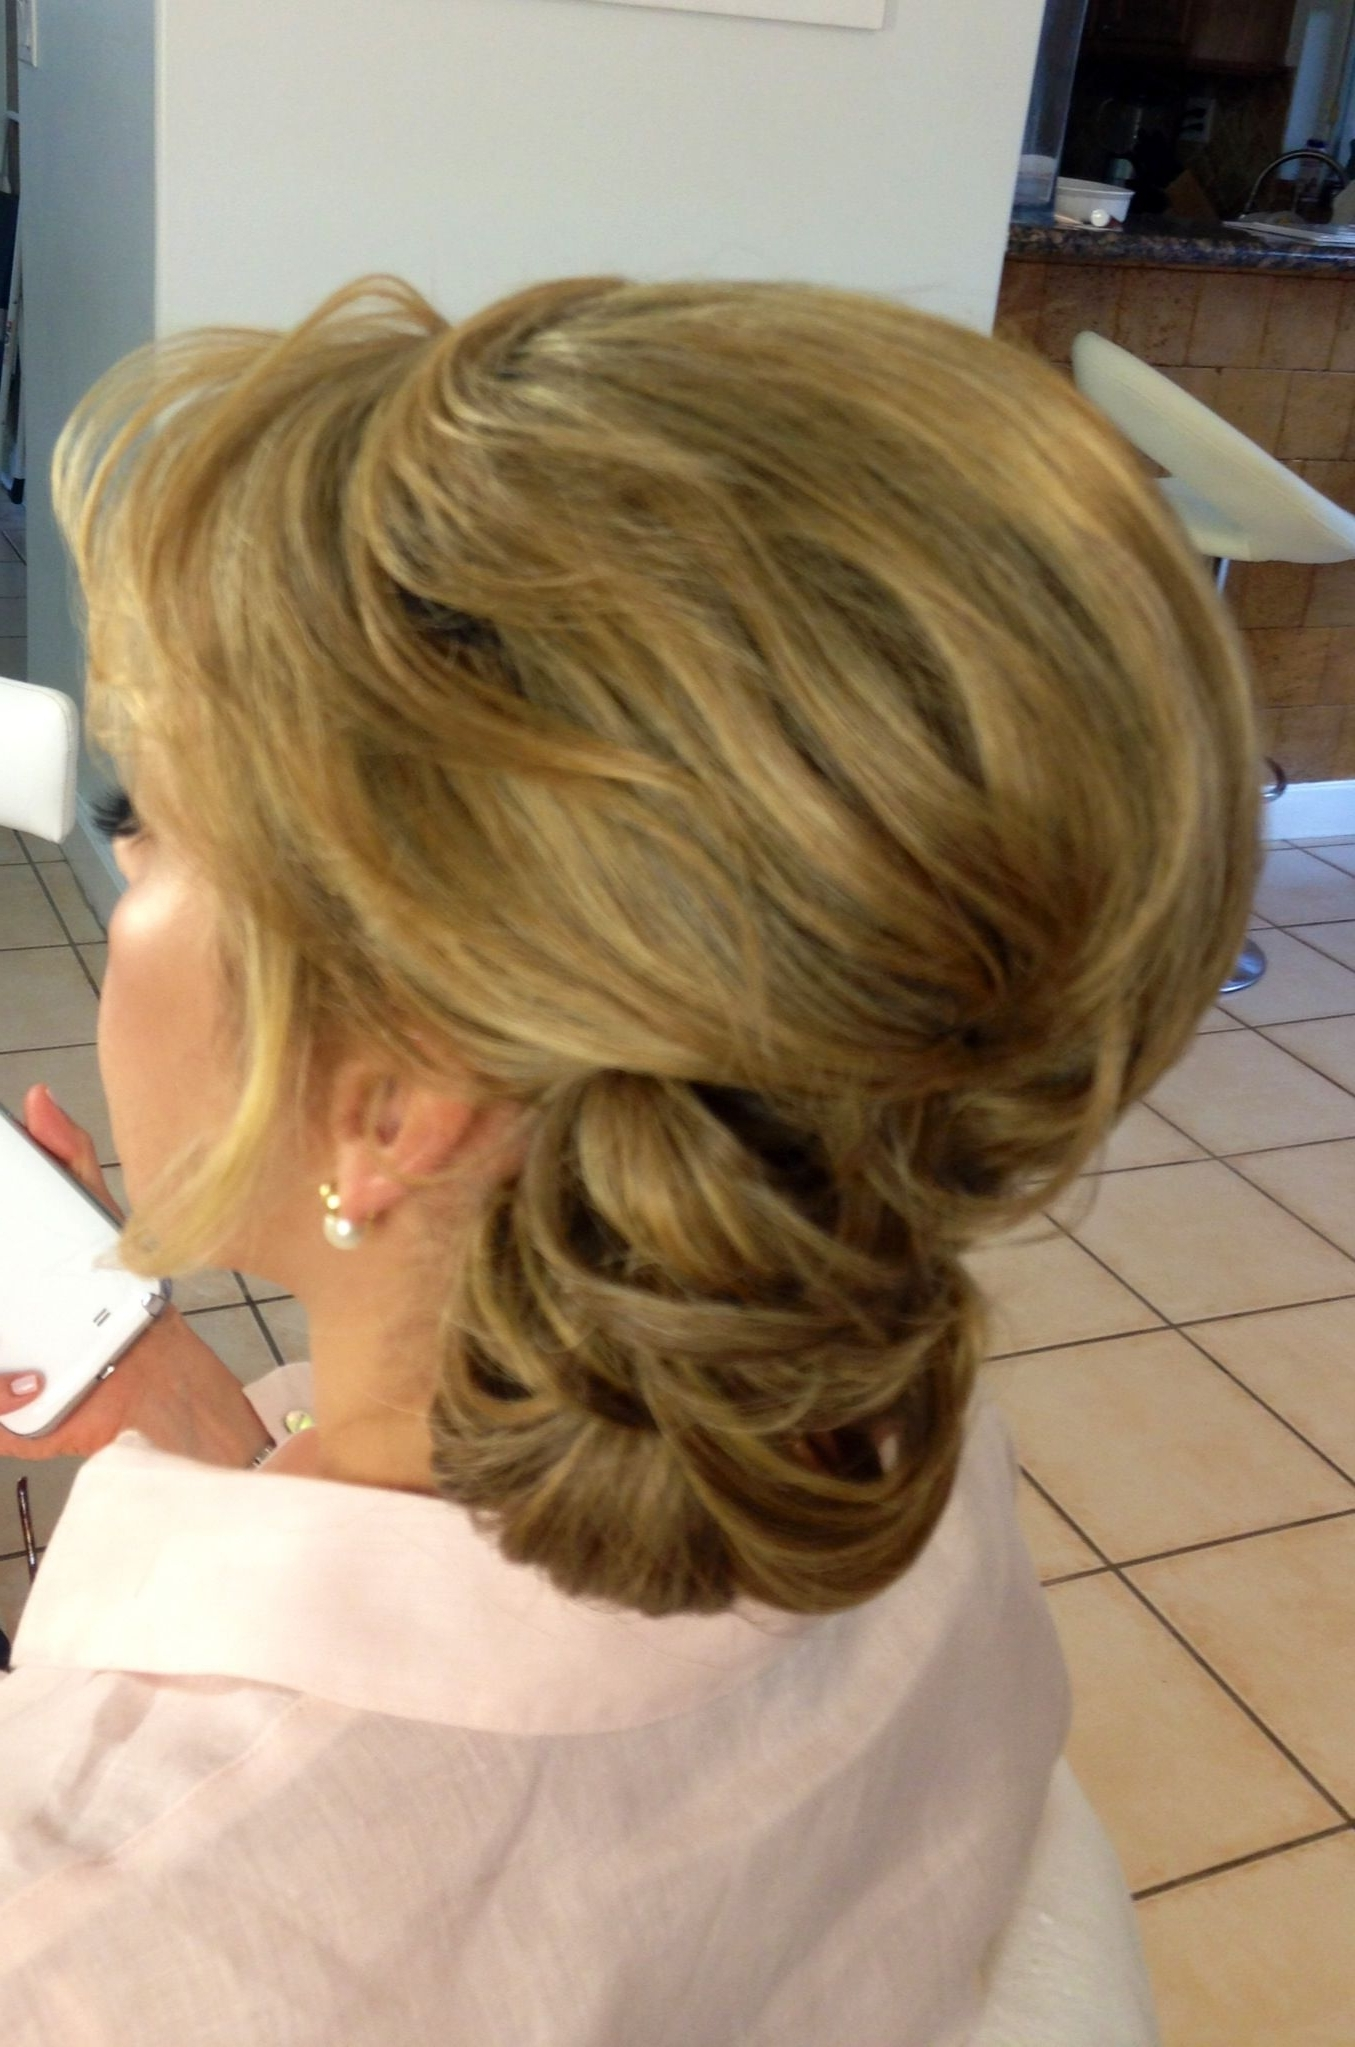 The Mother Of The Bride #hair #bride #updo #momupdo #mom With Famous Mother Of The Bride Updo Wedding Hairstyles (View 12 of 15)